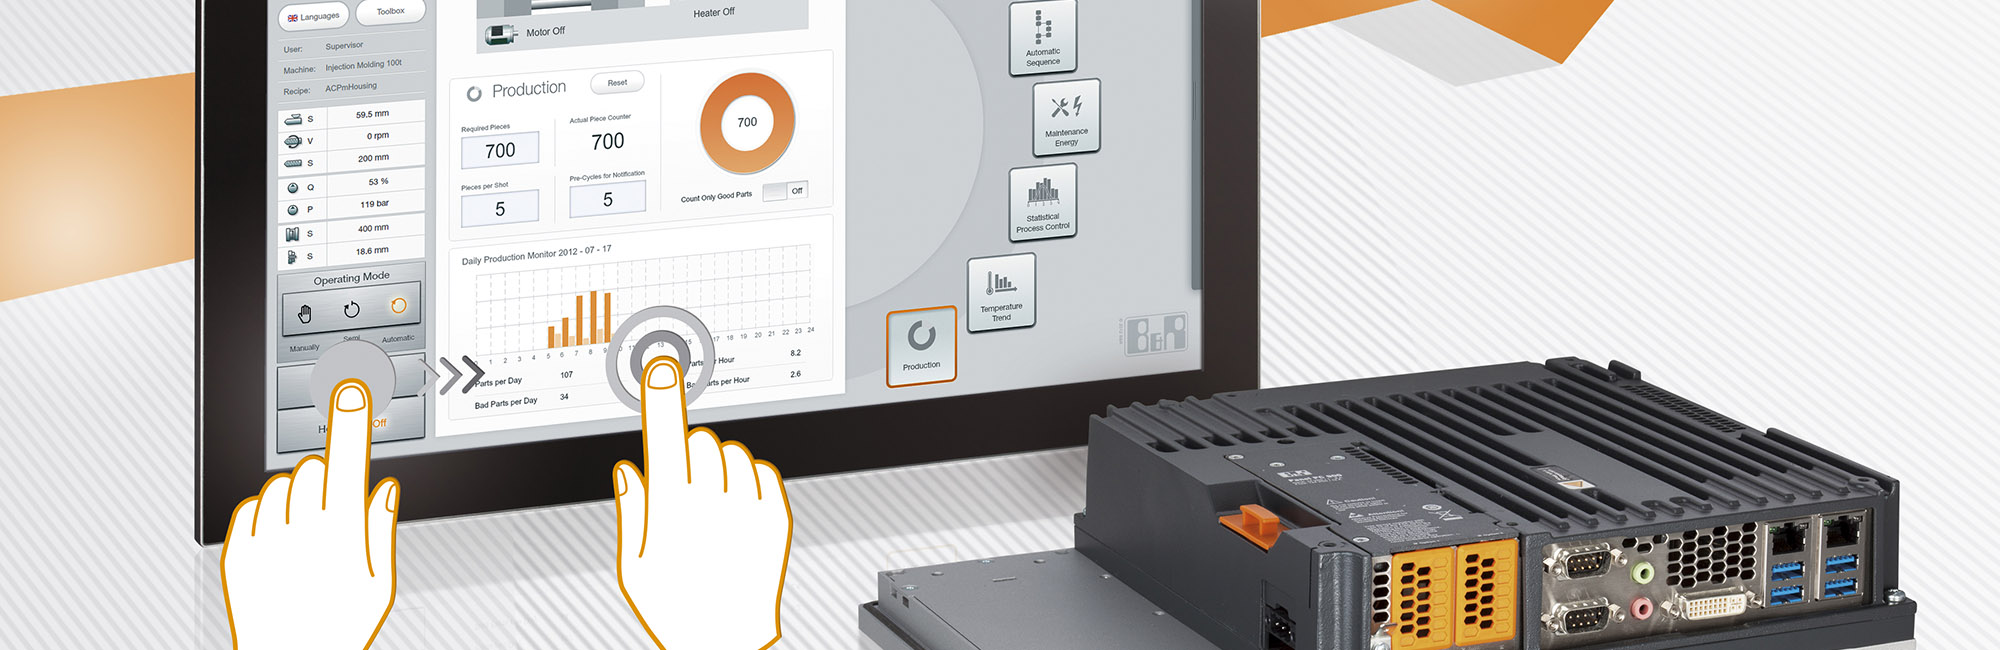 Hartfiel Provides Industrial PCs and touch screen Interfaces